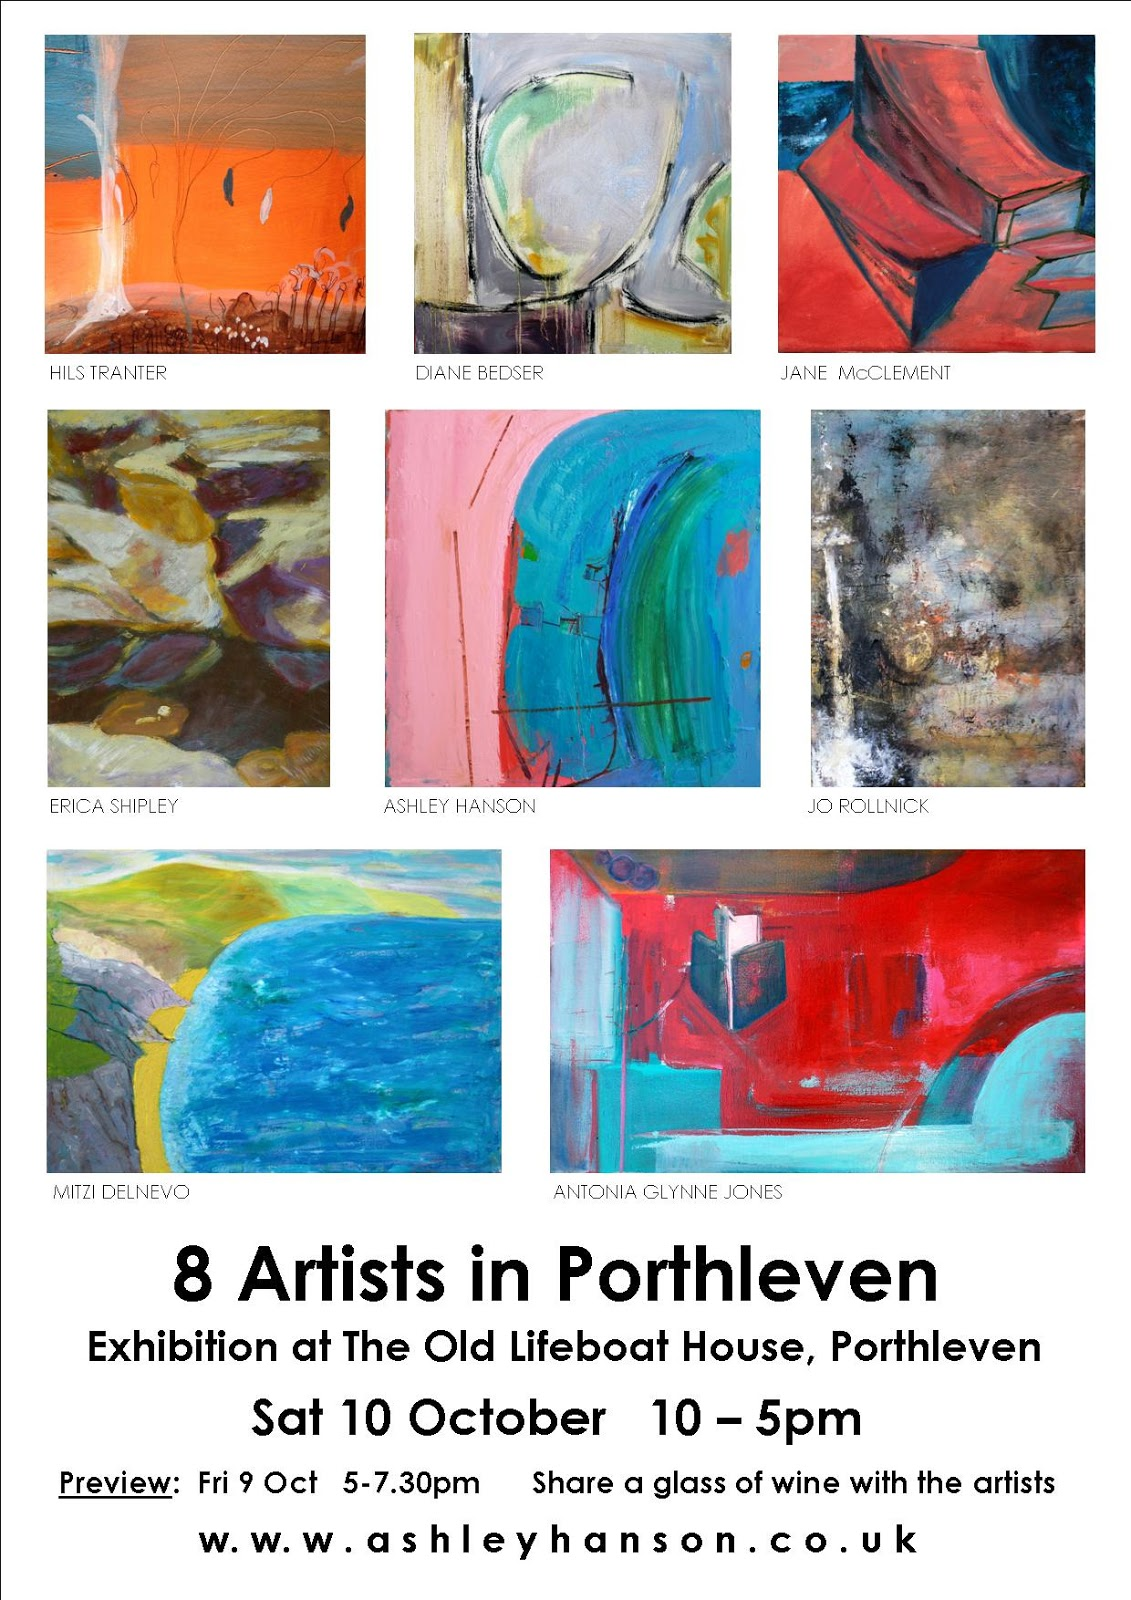 PORTHLEVEN OCT 15 POSTER small file